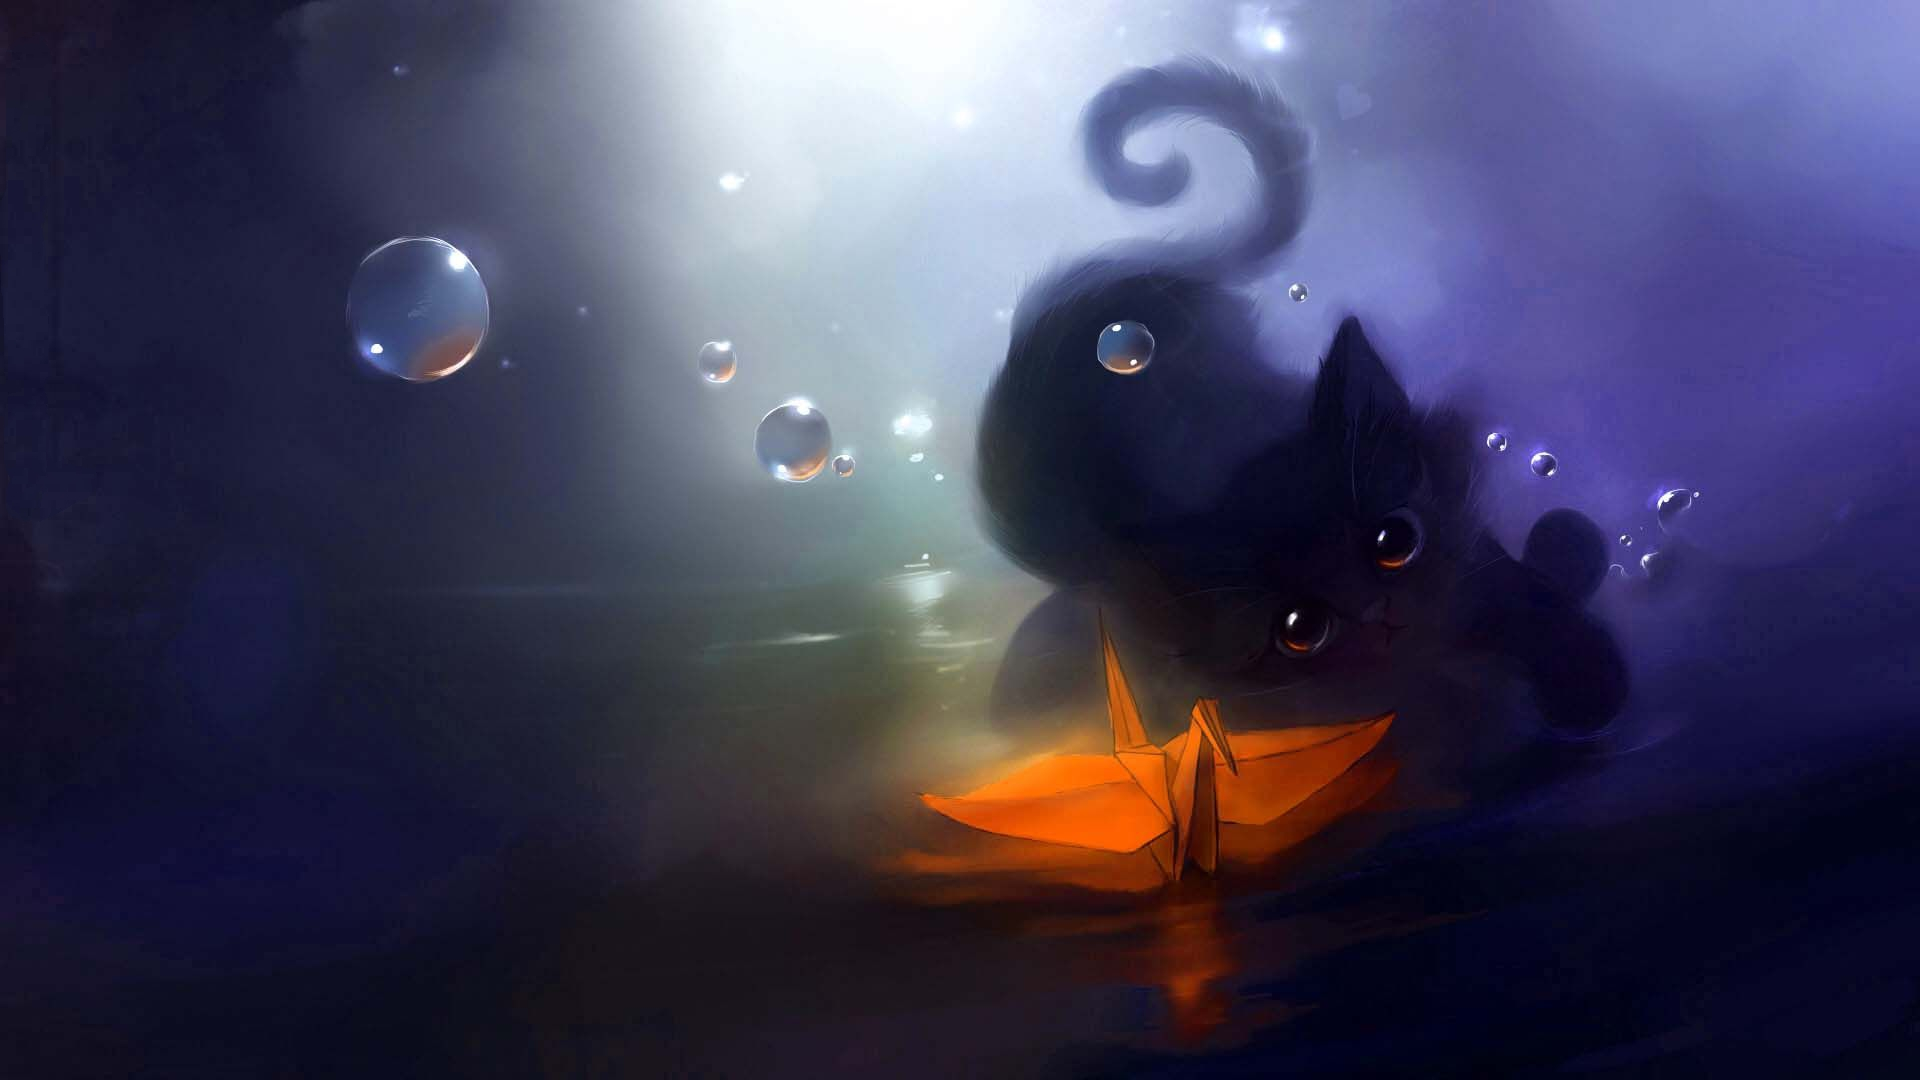 Anime cat desktop wallpaper - Anime cat wallpaper ...